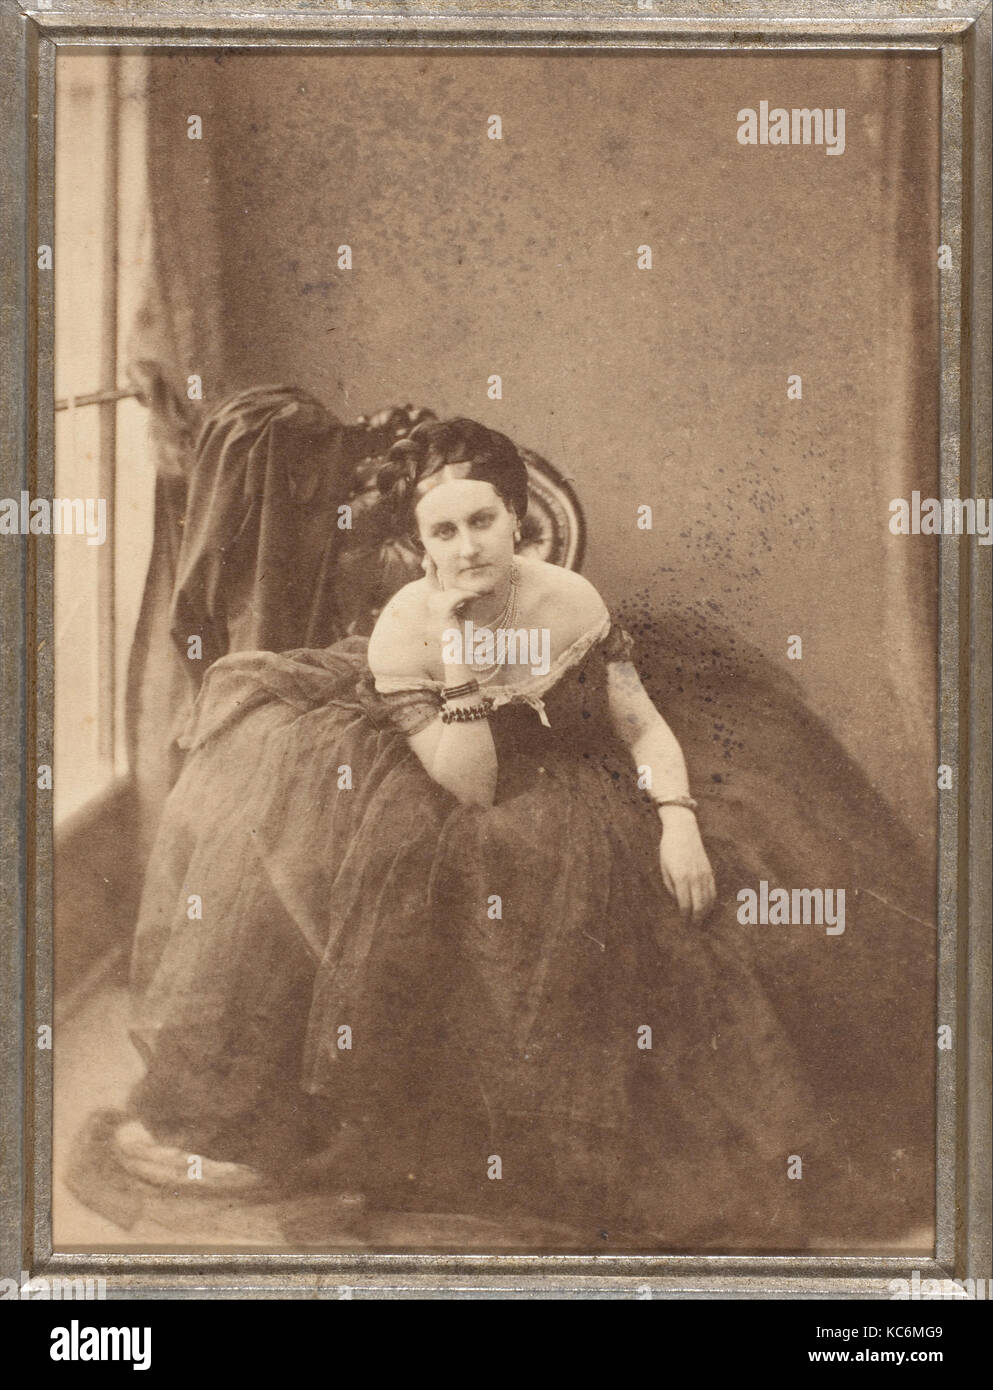 The Gaze, 1856–57, Albumen silver print from glass negative, Image: 9 x 6.6 cm (3 9/16 x 2 5/8 in.), Photographs, - Stock Image